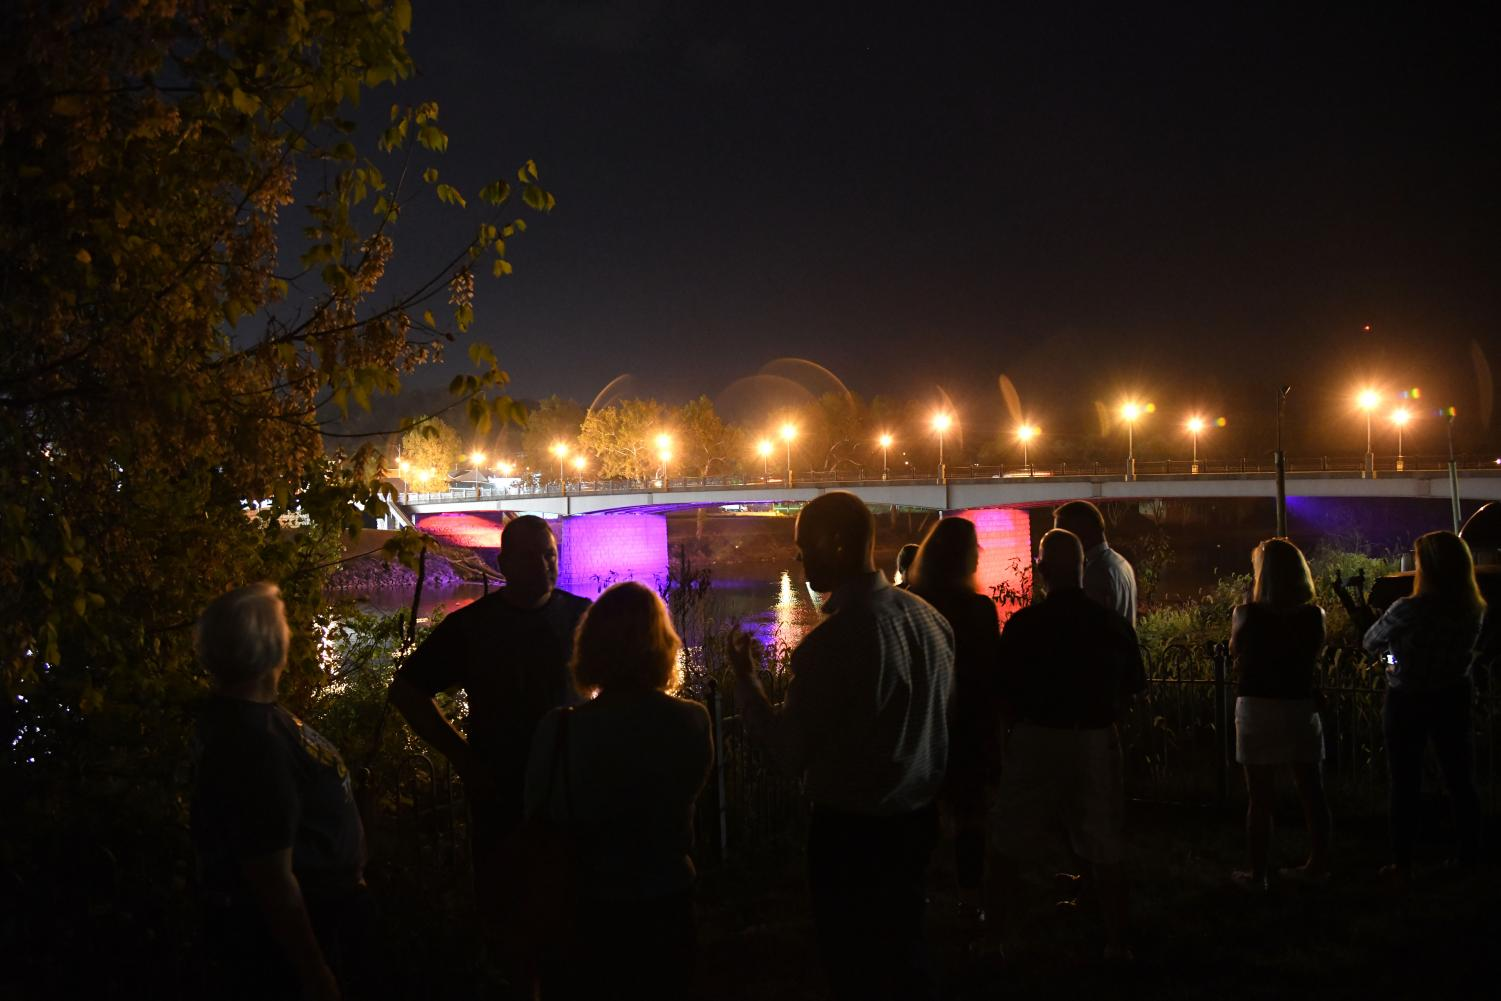 Community members involved in making the bridge lighting possible gathered at Restoration Park Tuesday evening to view the lights.